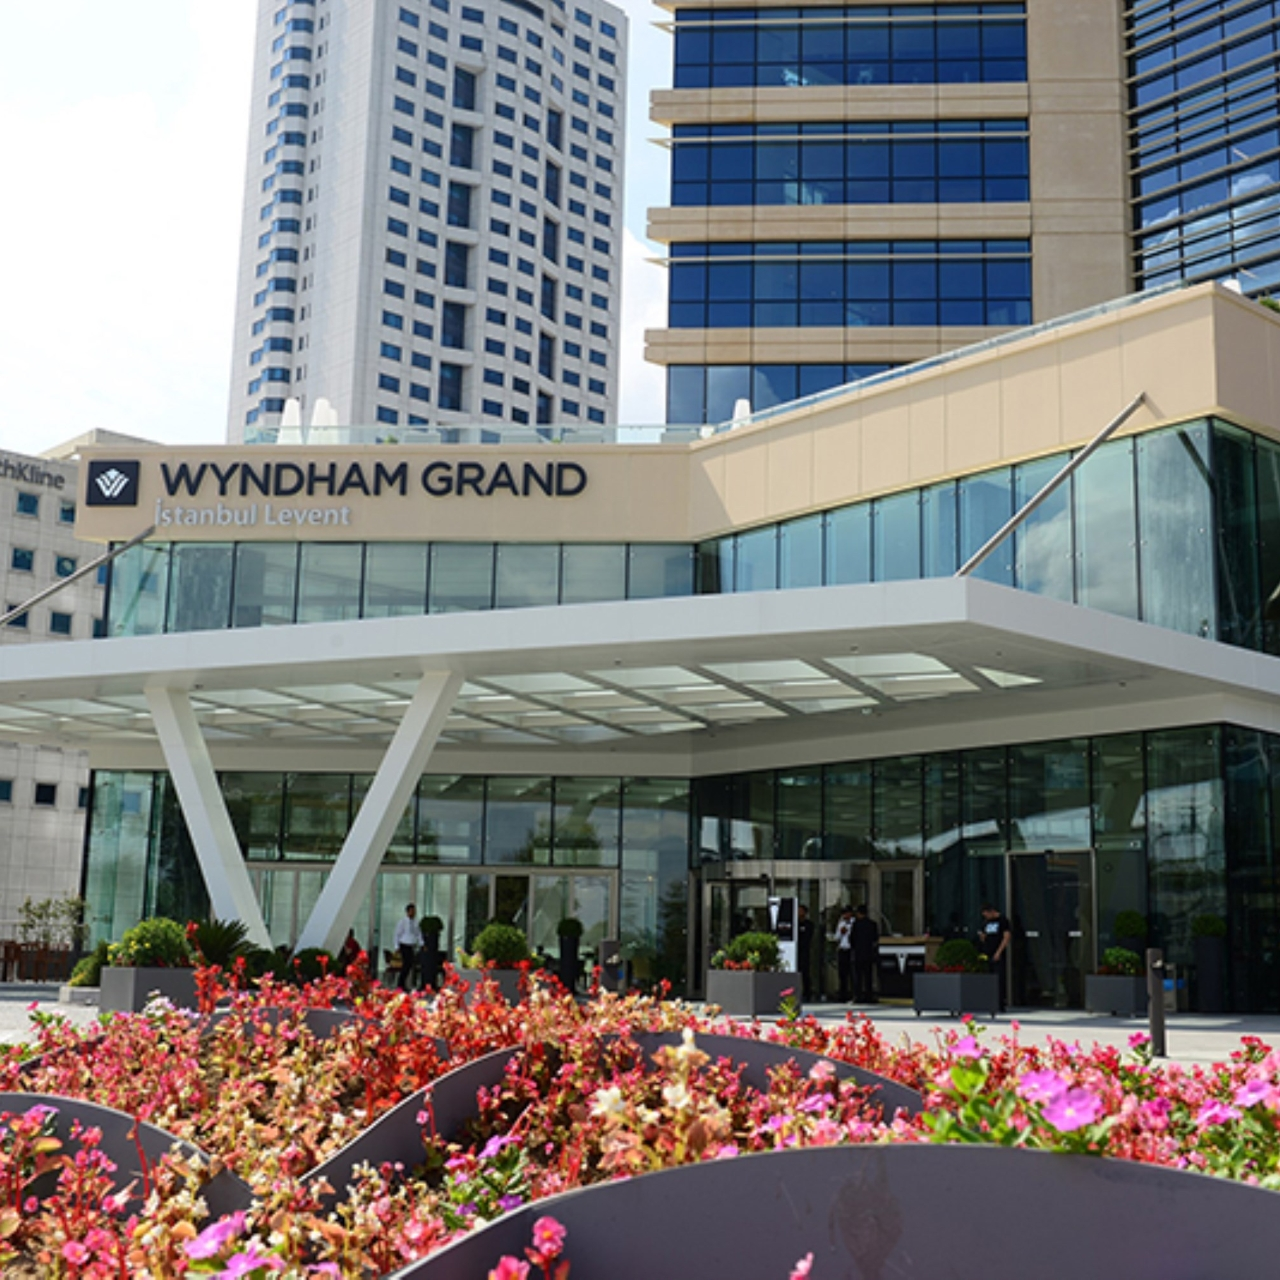 Hotel Wyndham Grand Istanbul Levent Turkey At Hrs With Free Services